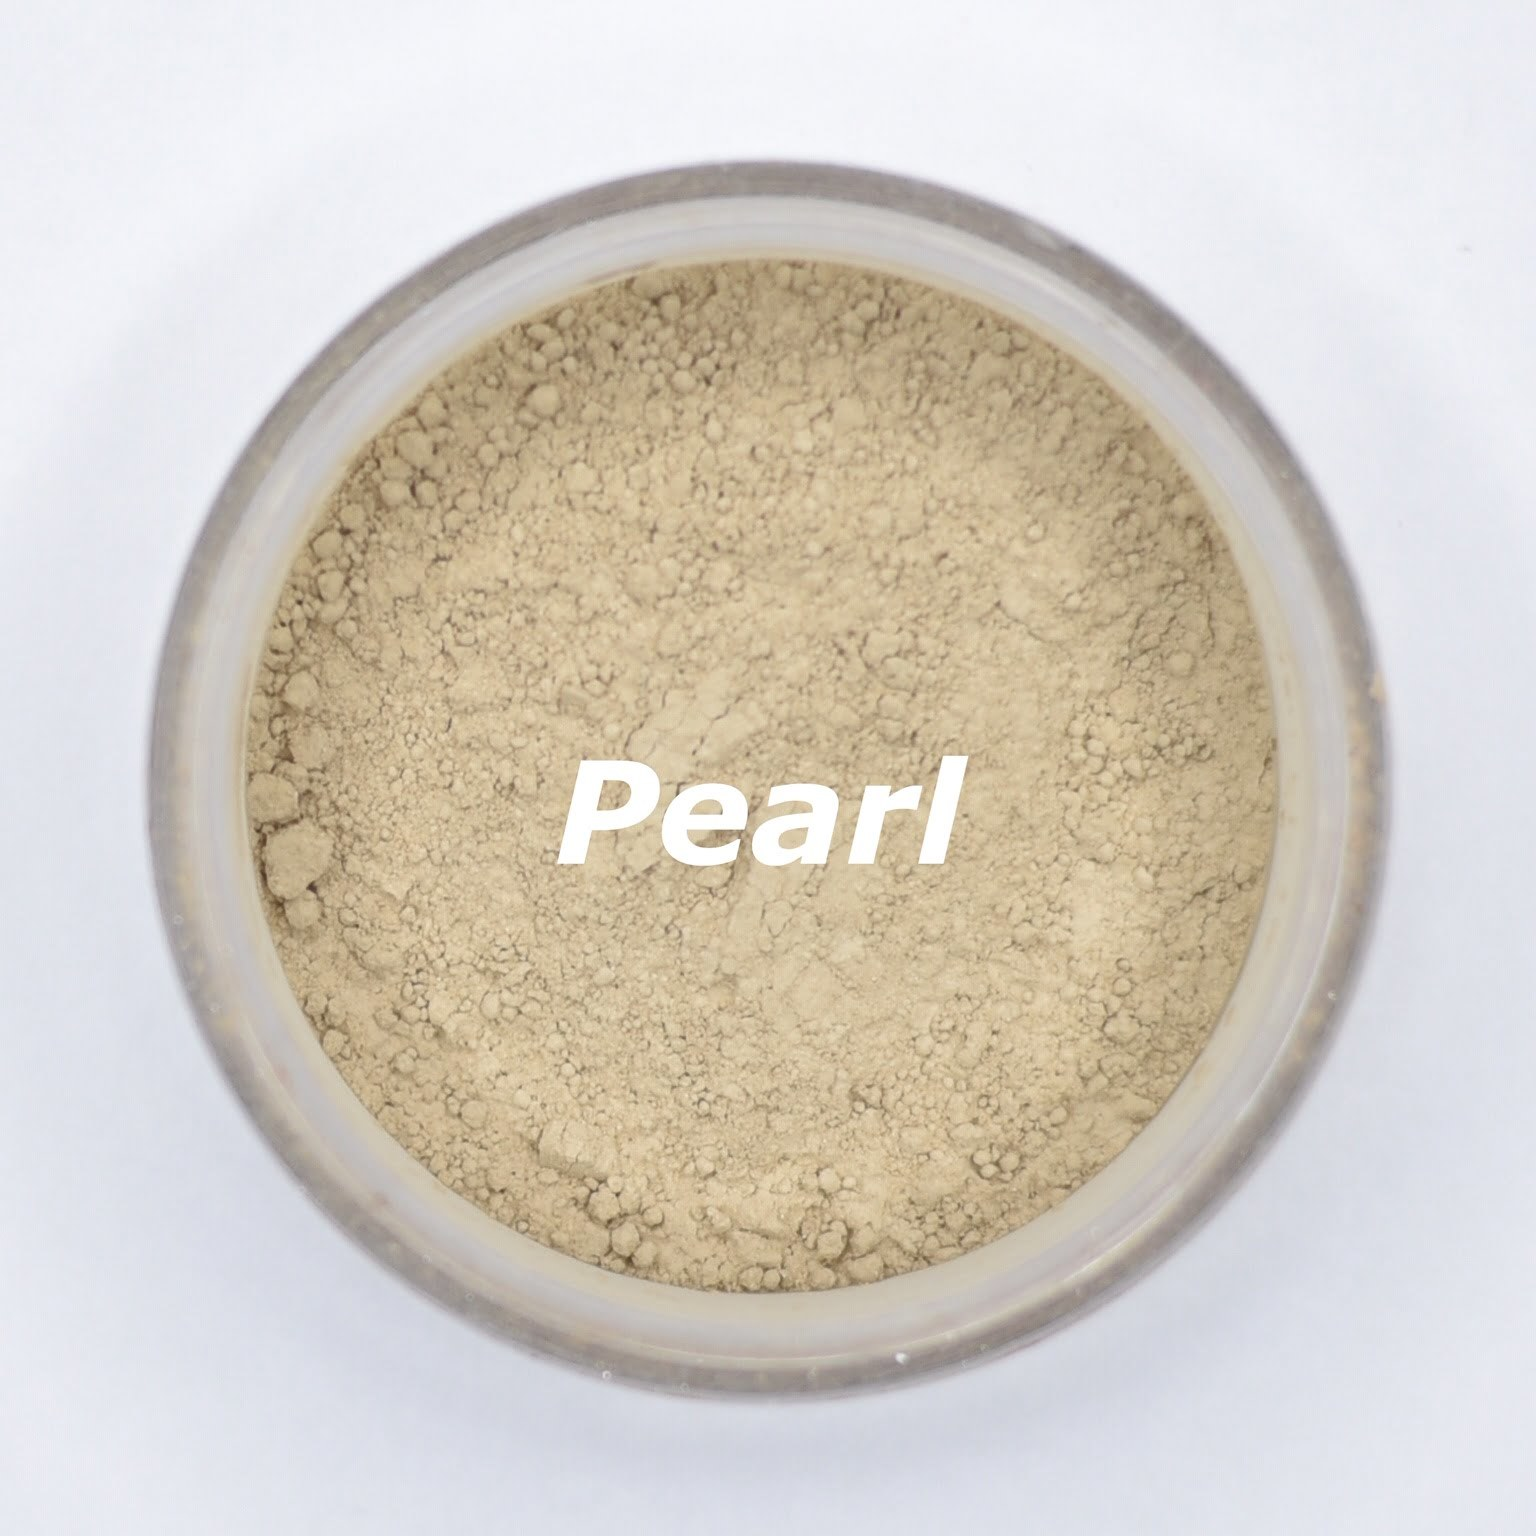 pearl foundation shade